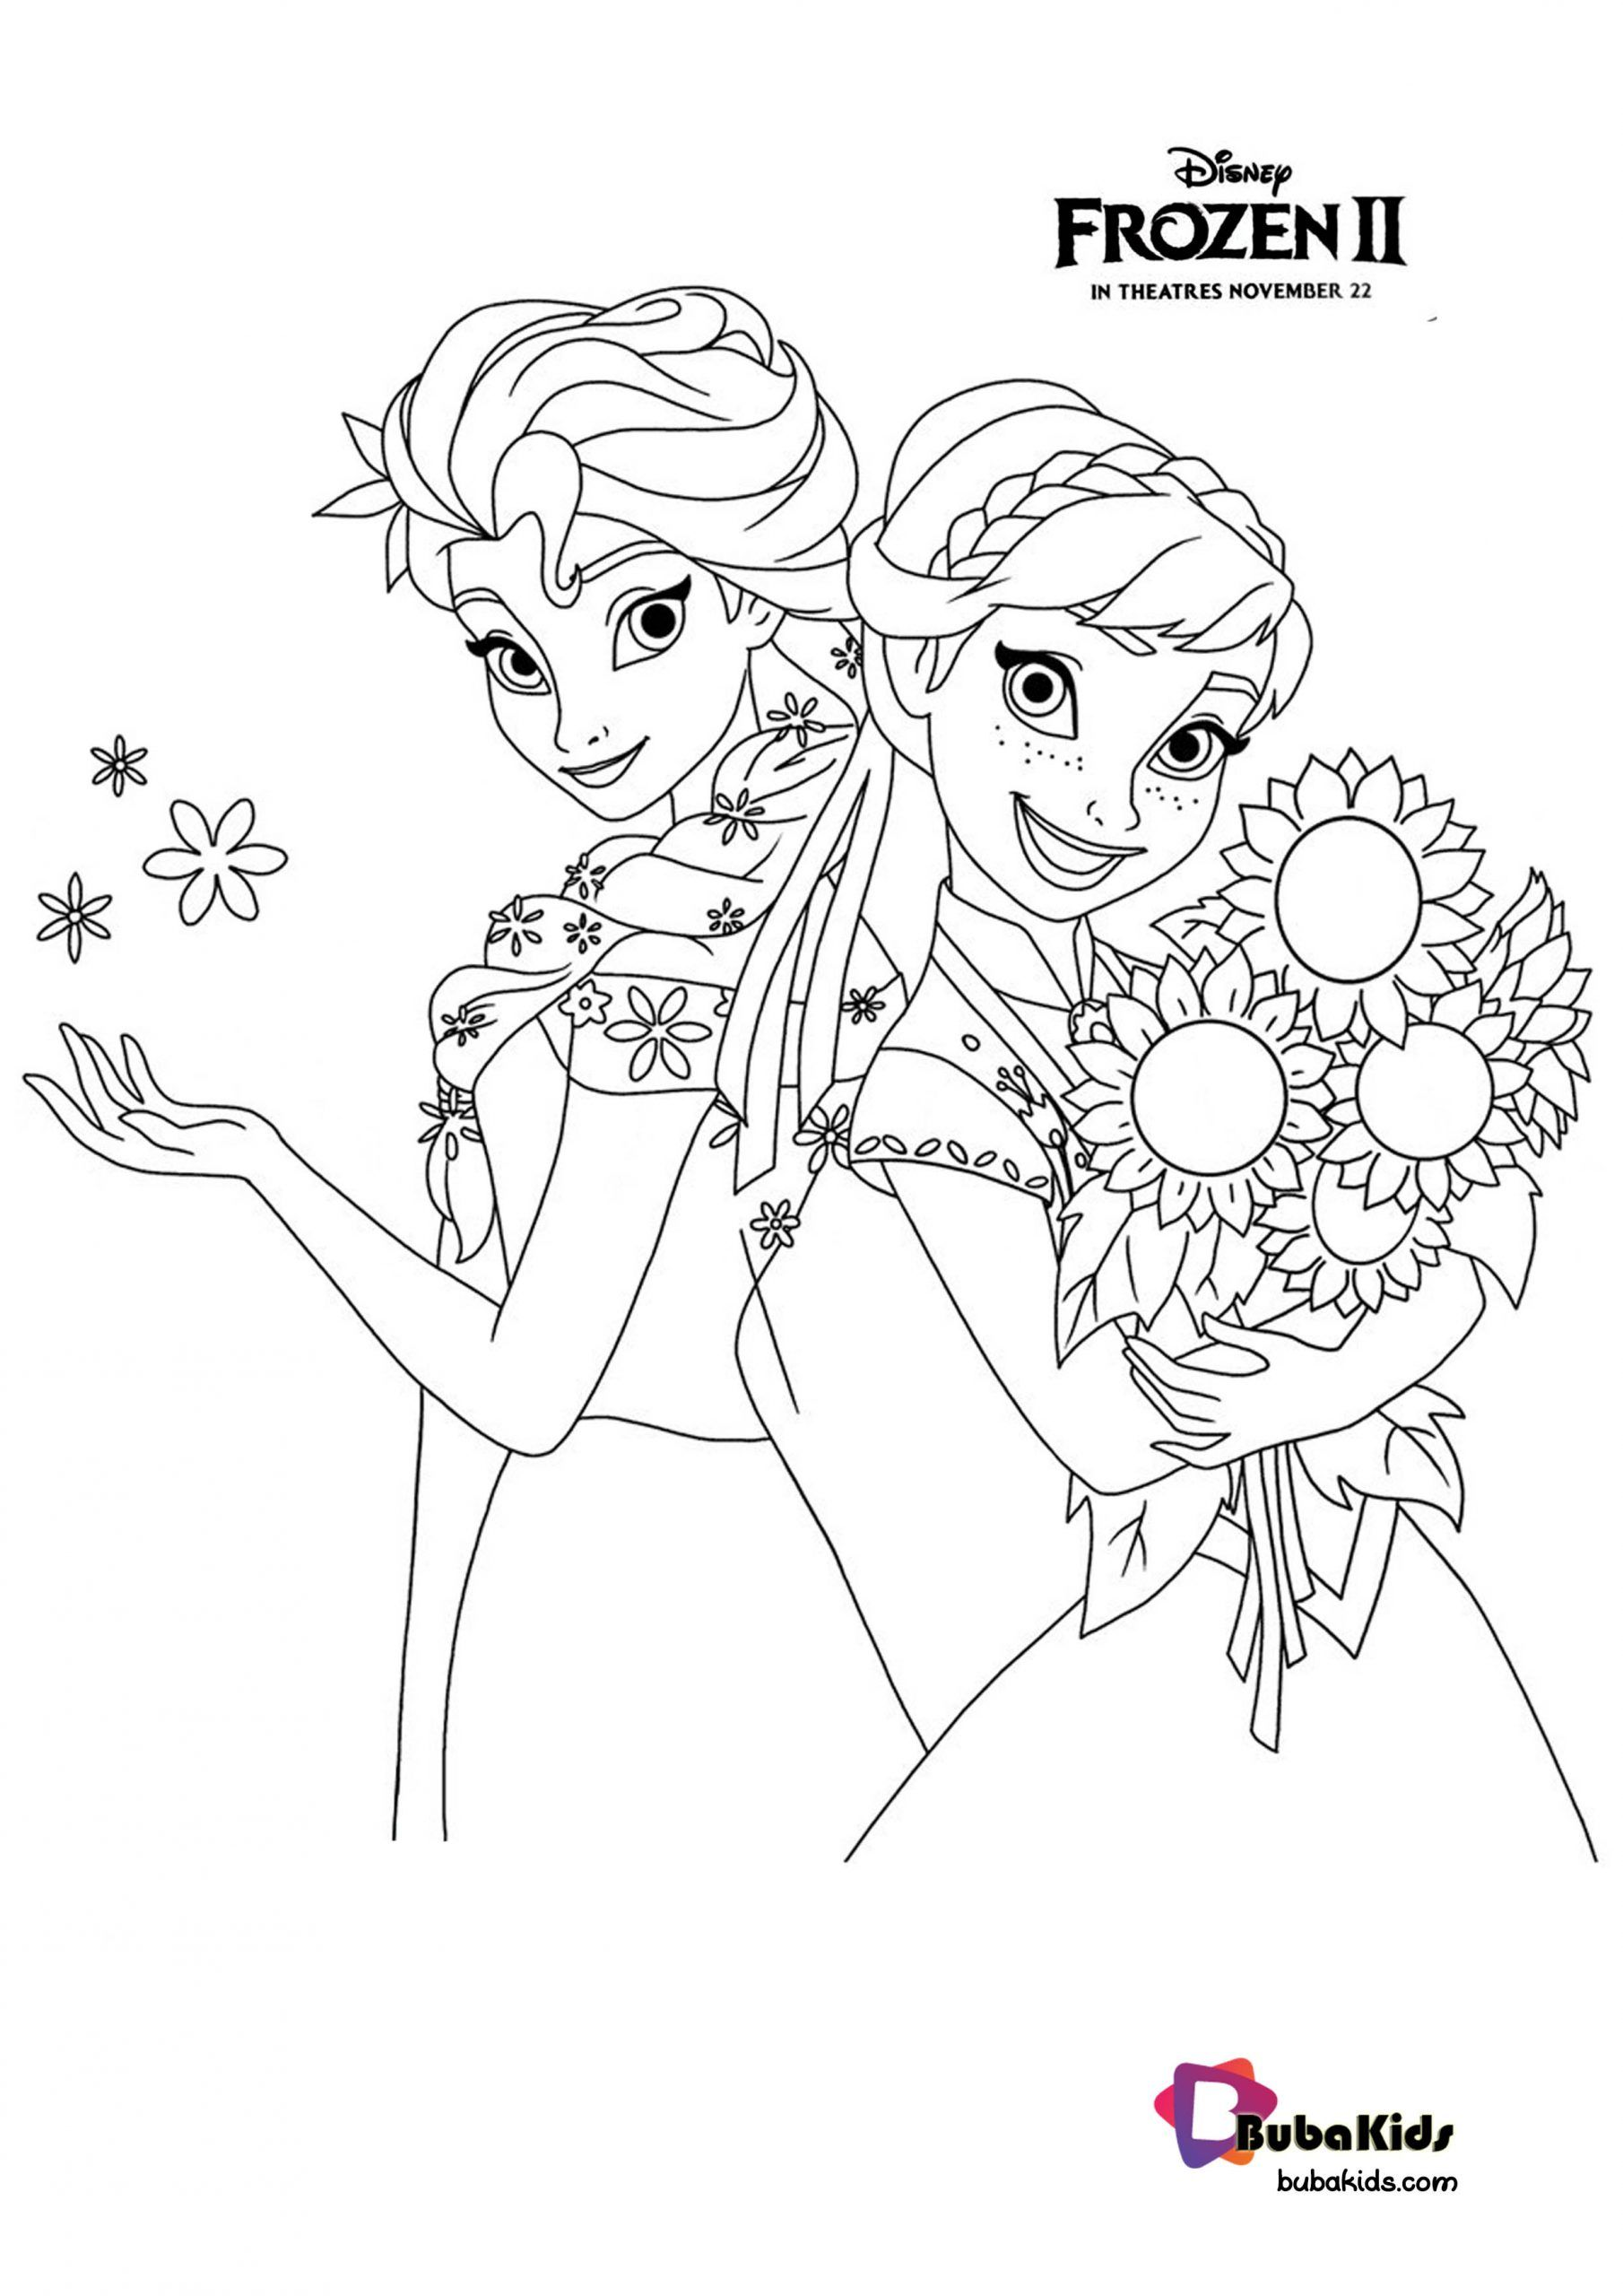 elsa frozen coloring sheets frozen 2 coloring pages elsa colouring mermaid elsa coloring frozen sheets